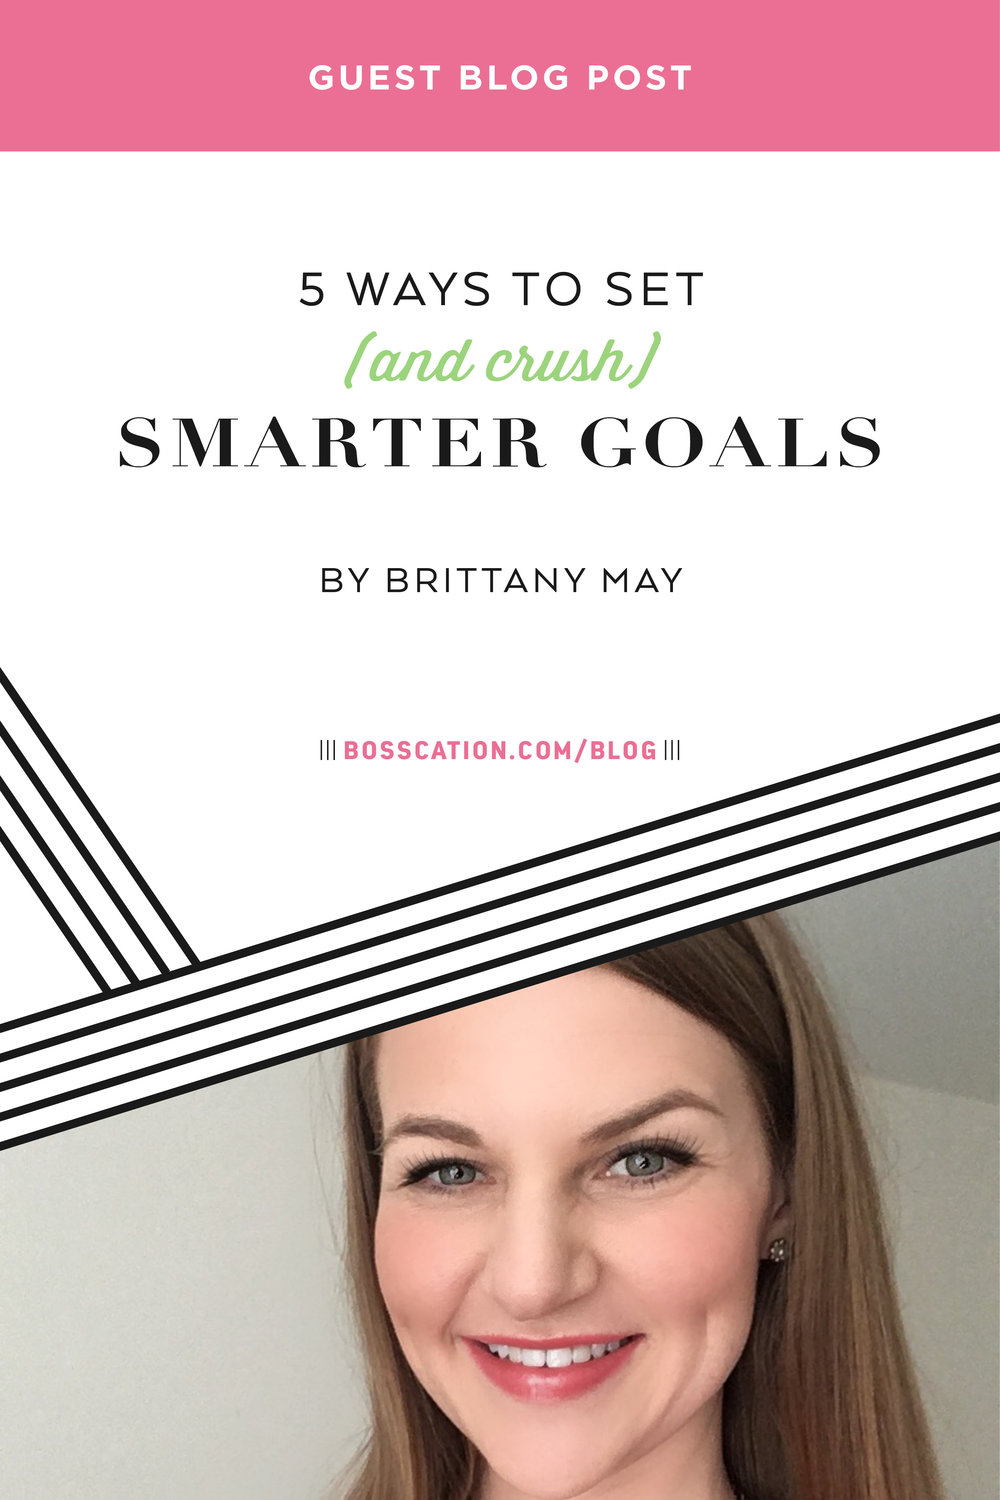 set-and-crush-smarter-goals-brittany-may3.jpg